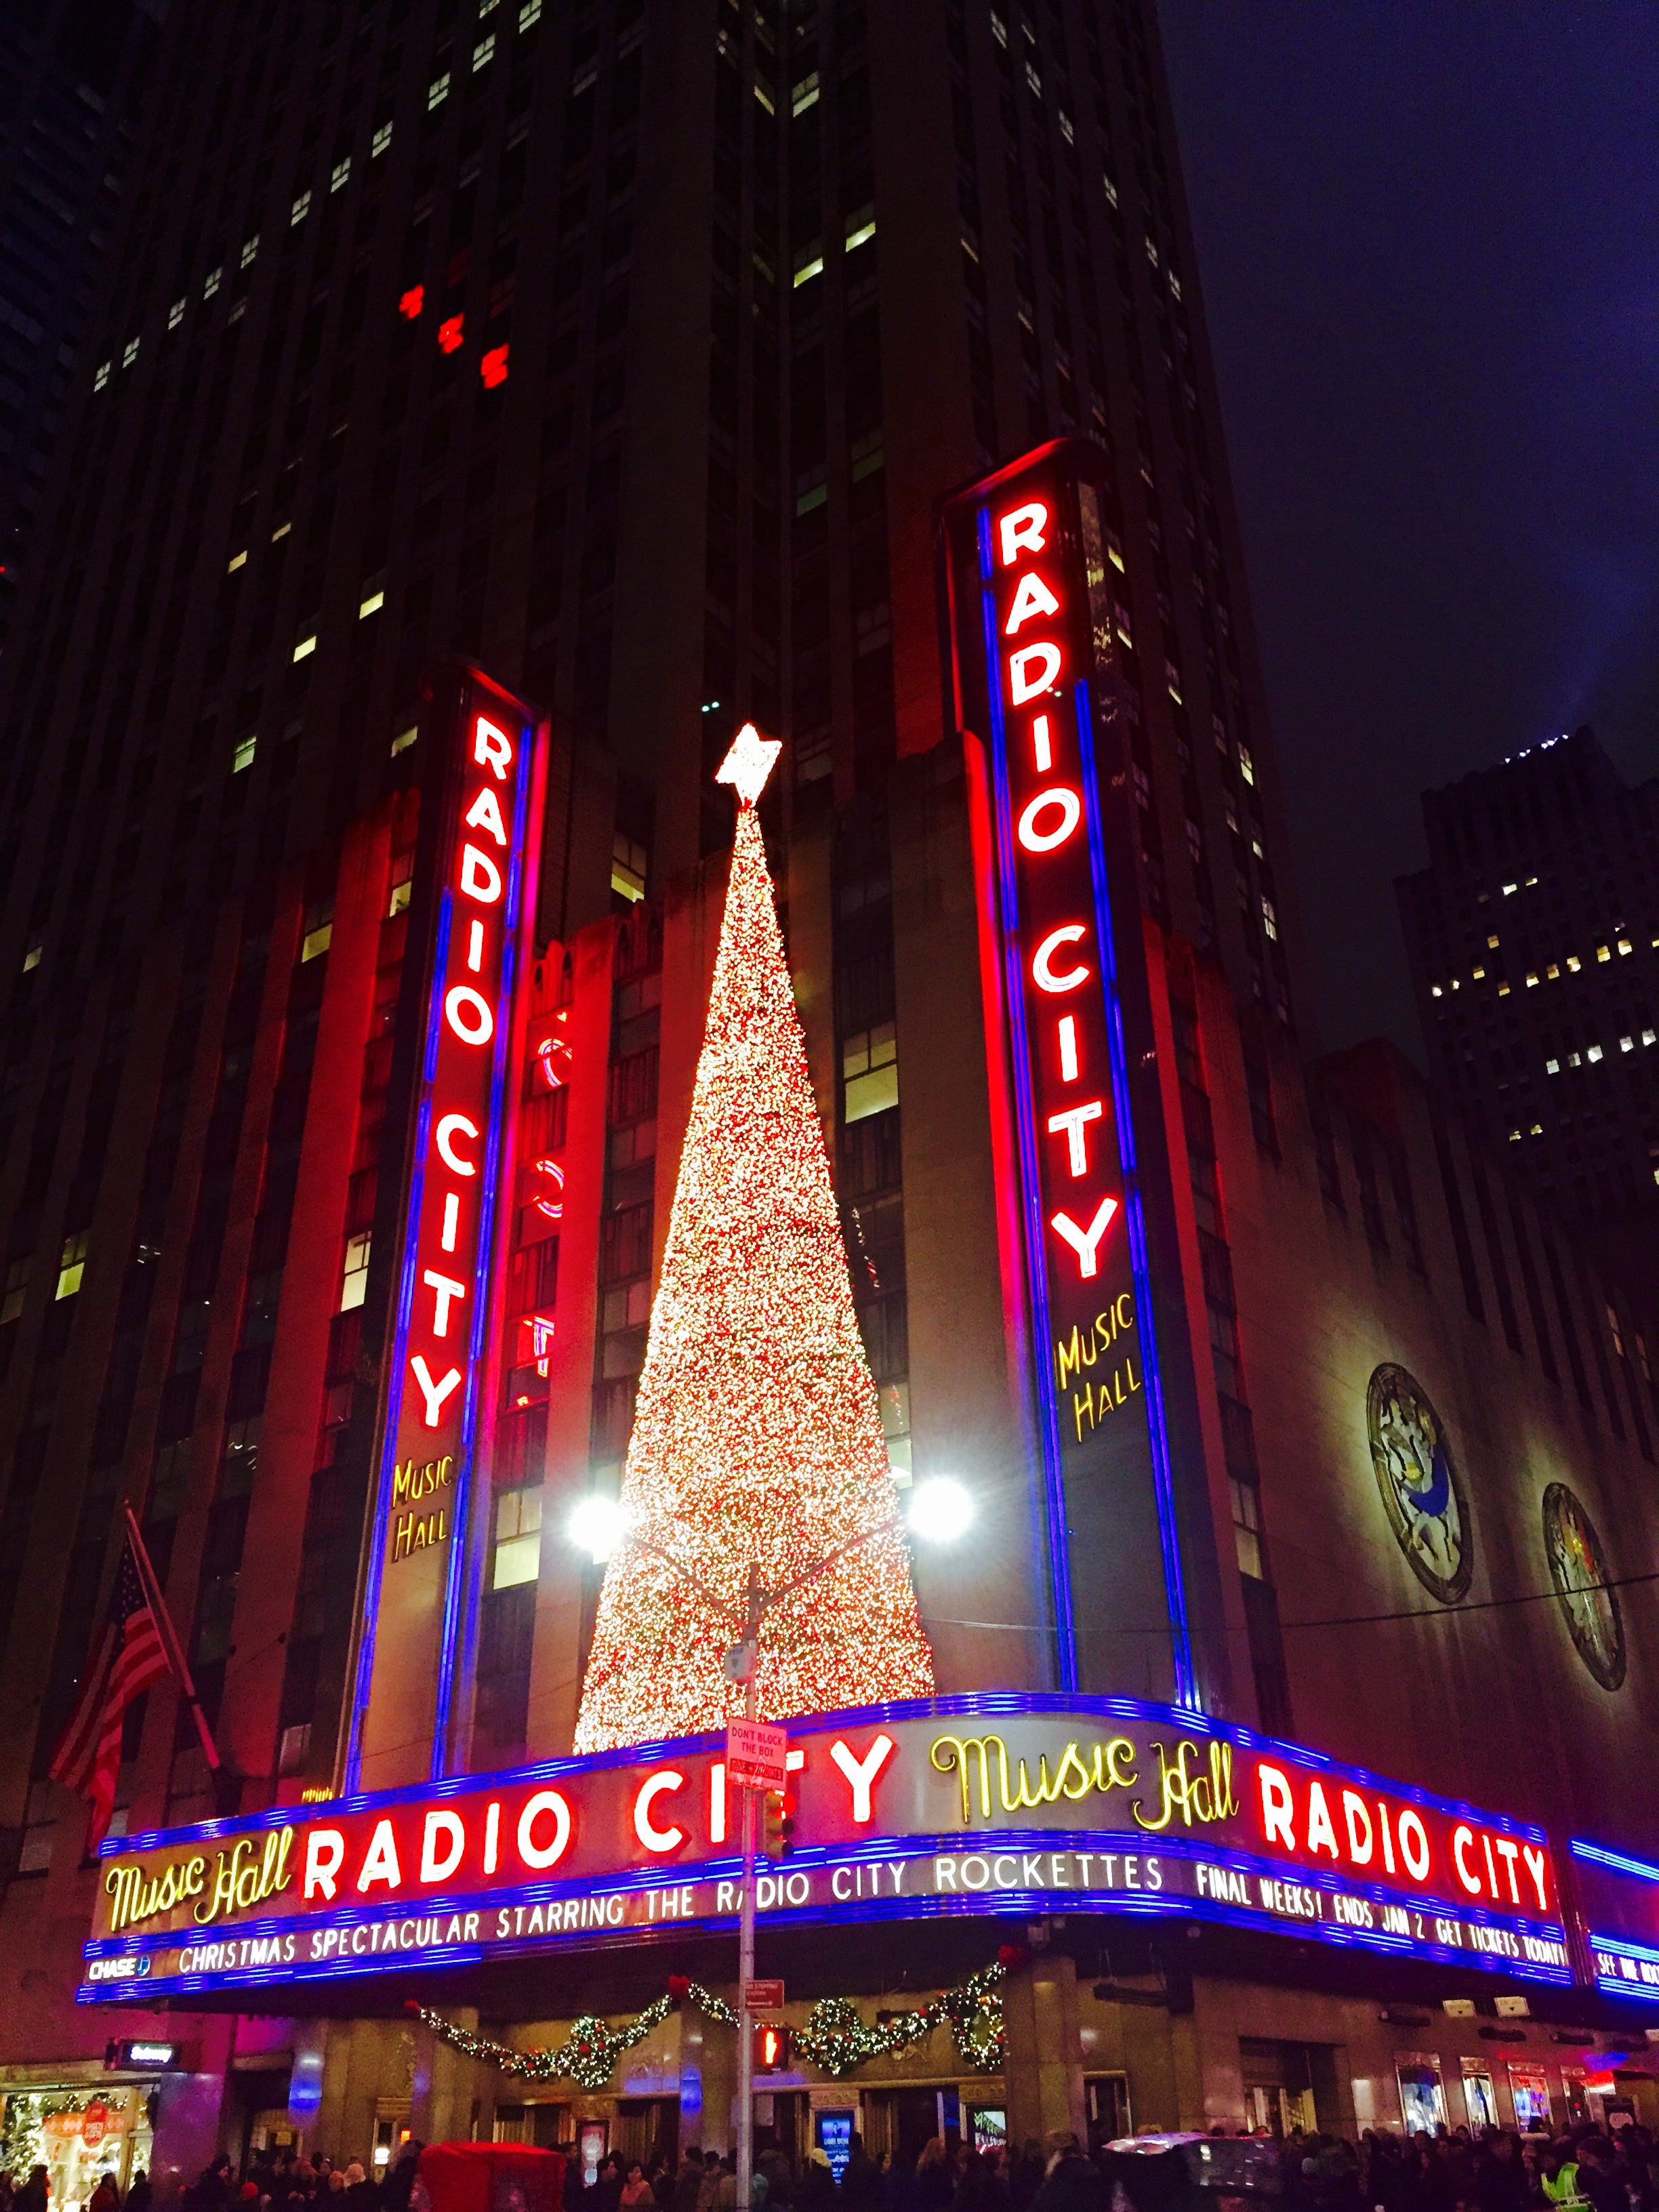 The Tree at Radio City Music Hall